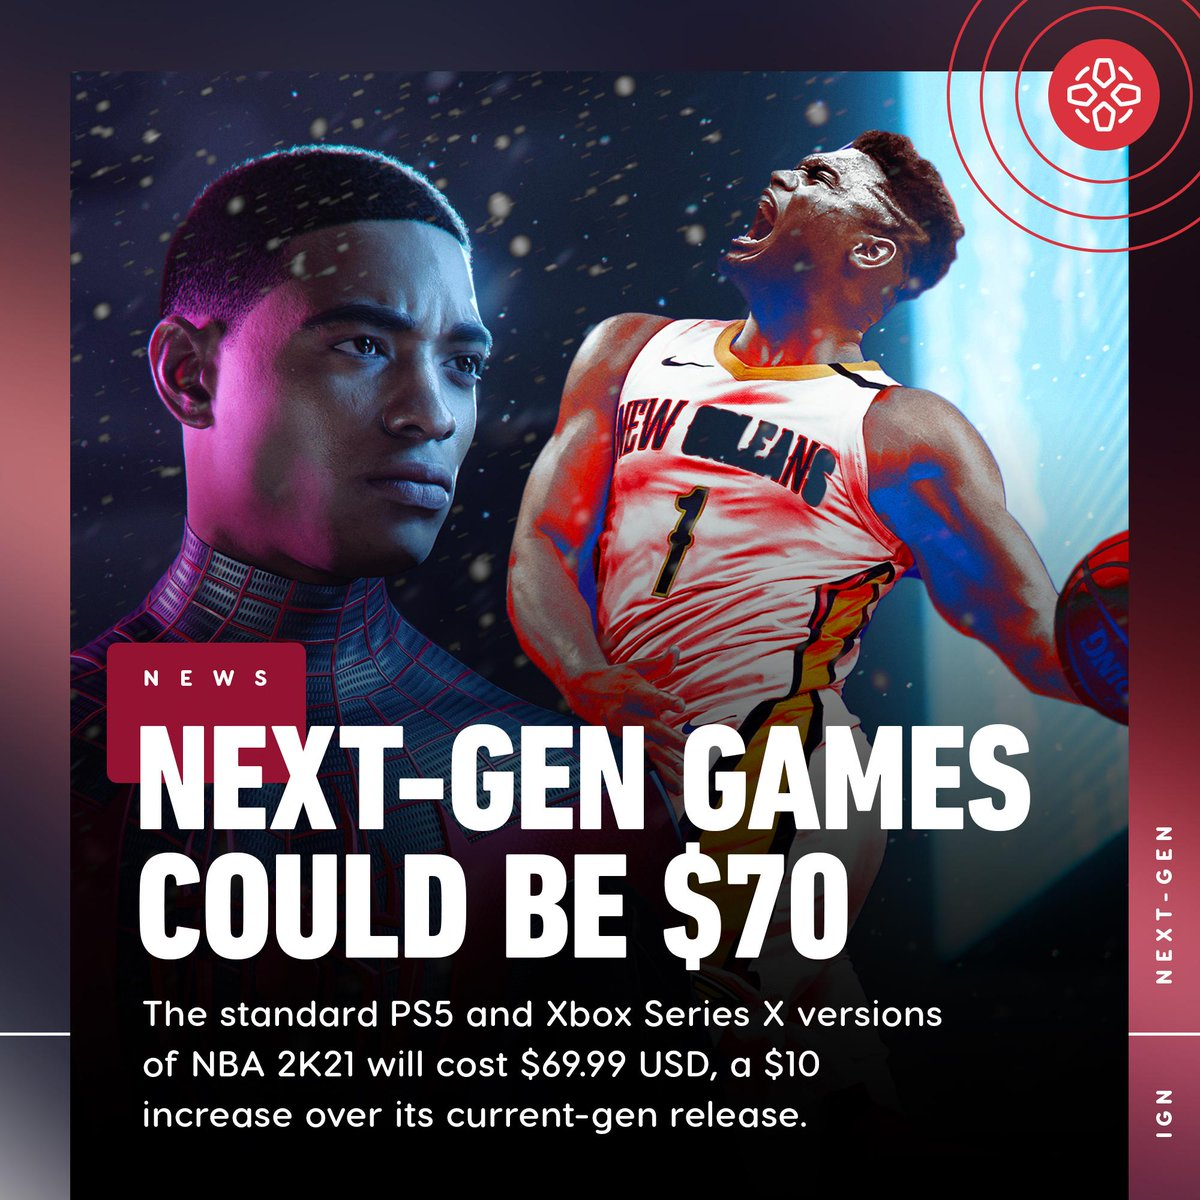 Could NBA 2K21s next-gen price increase be a sign of things to come for PS5 and Xbox Series X? ign.com/articles/nba-2…